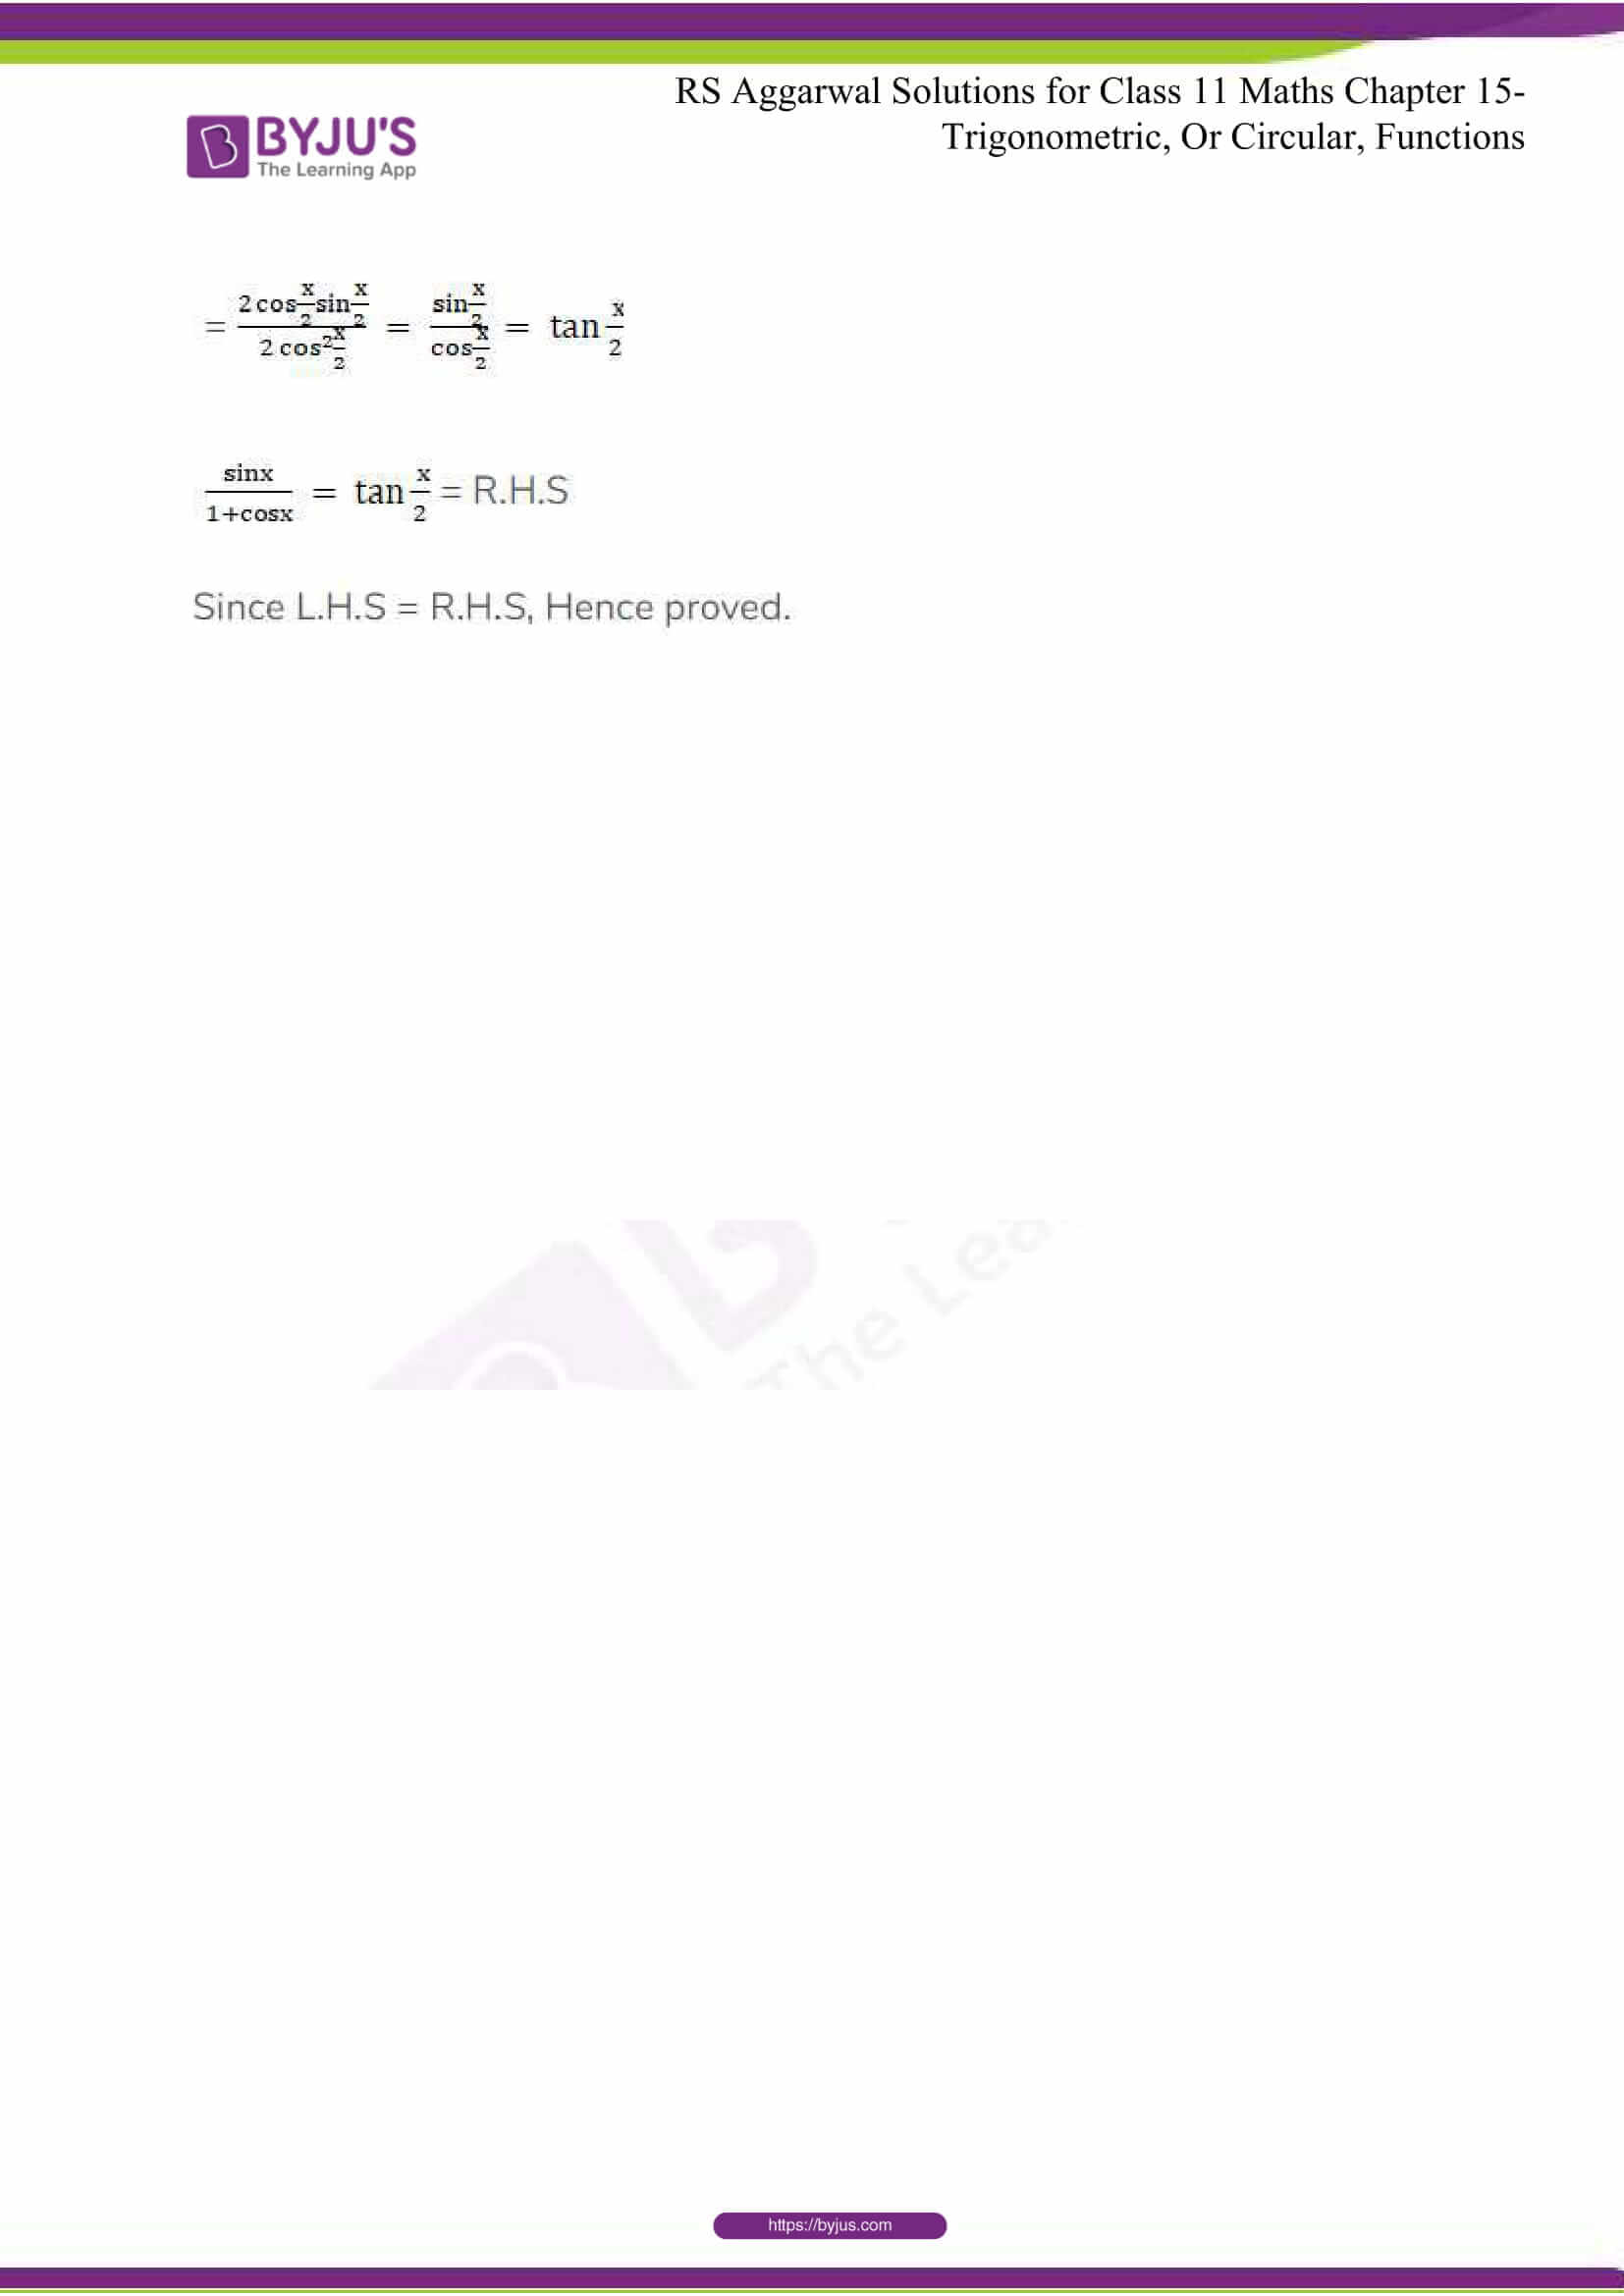 rsaggarwal solutions class 11 maths chapter 15 131